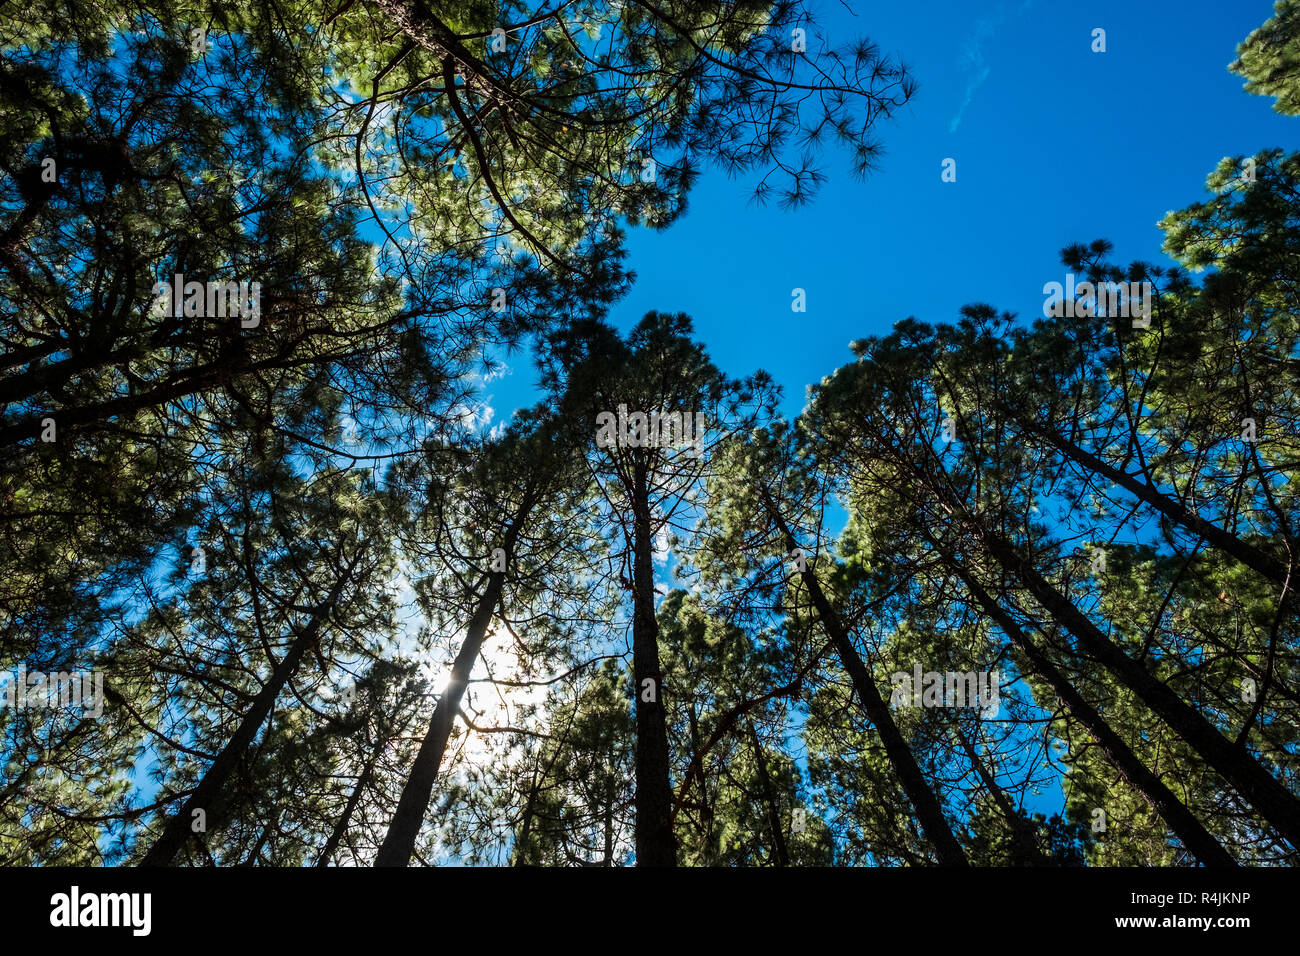 Ground view to the top high pines in the forest with the sun and the sunlight in the middle of the leafs. igh trees nature outdoor beauty concept Stock Photo